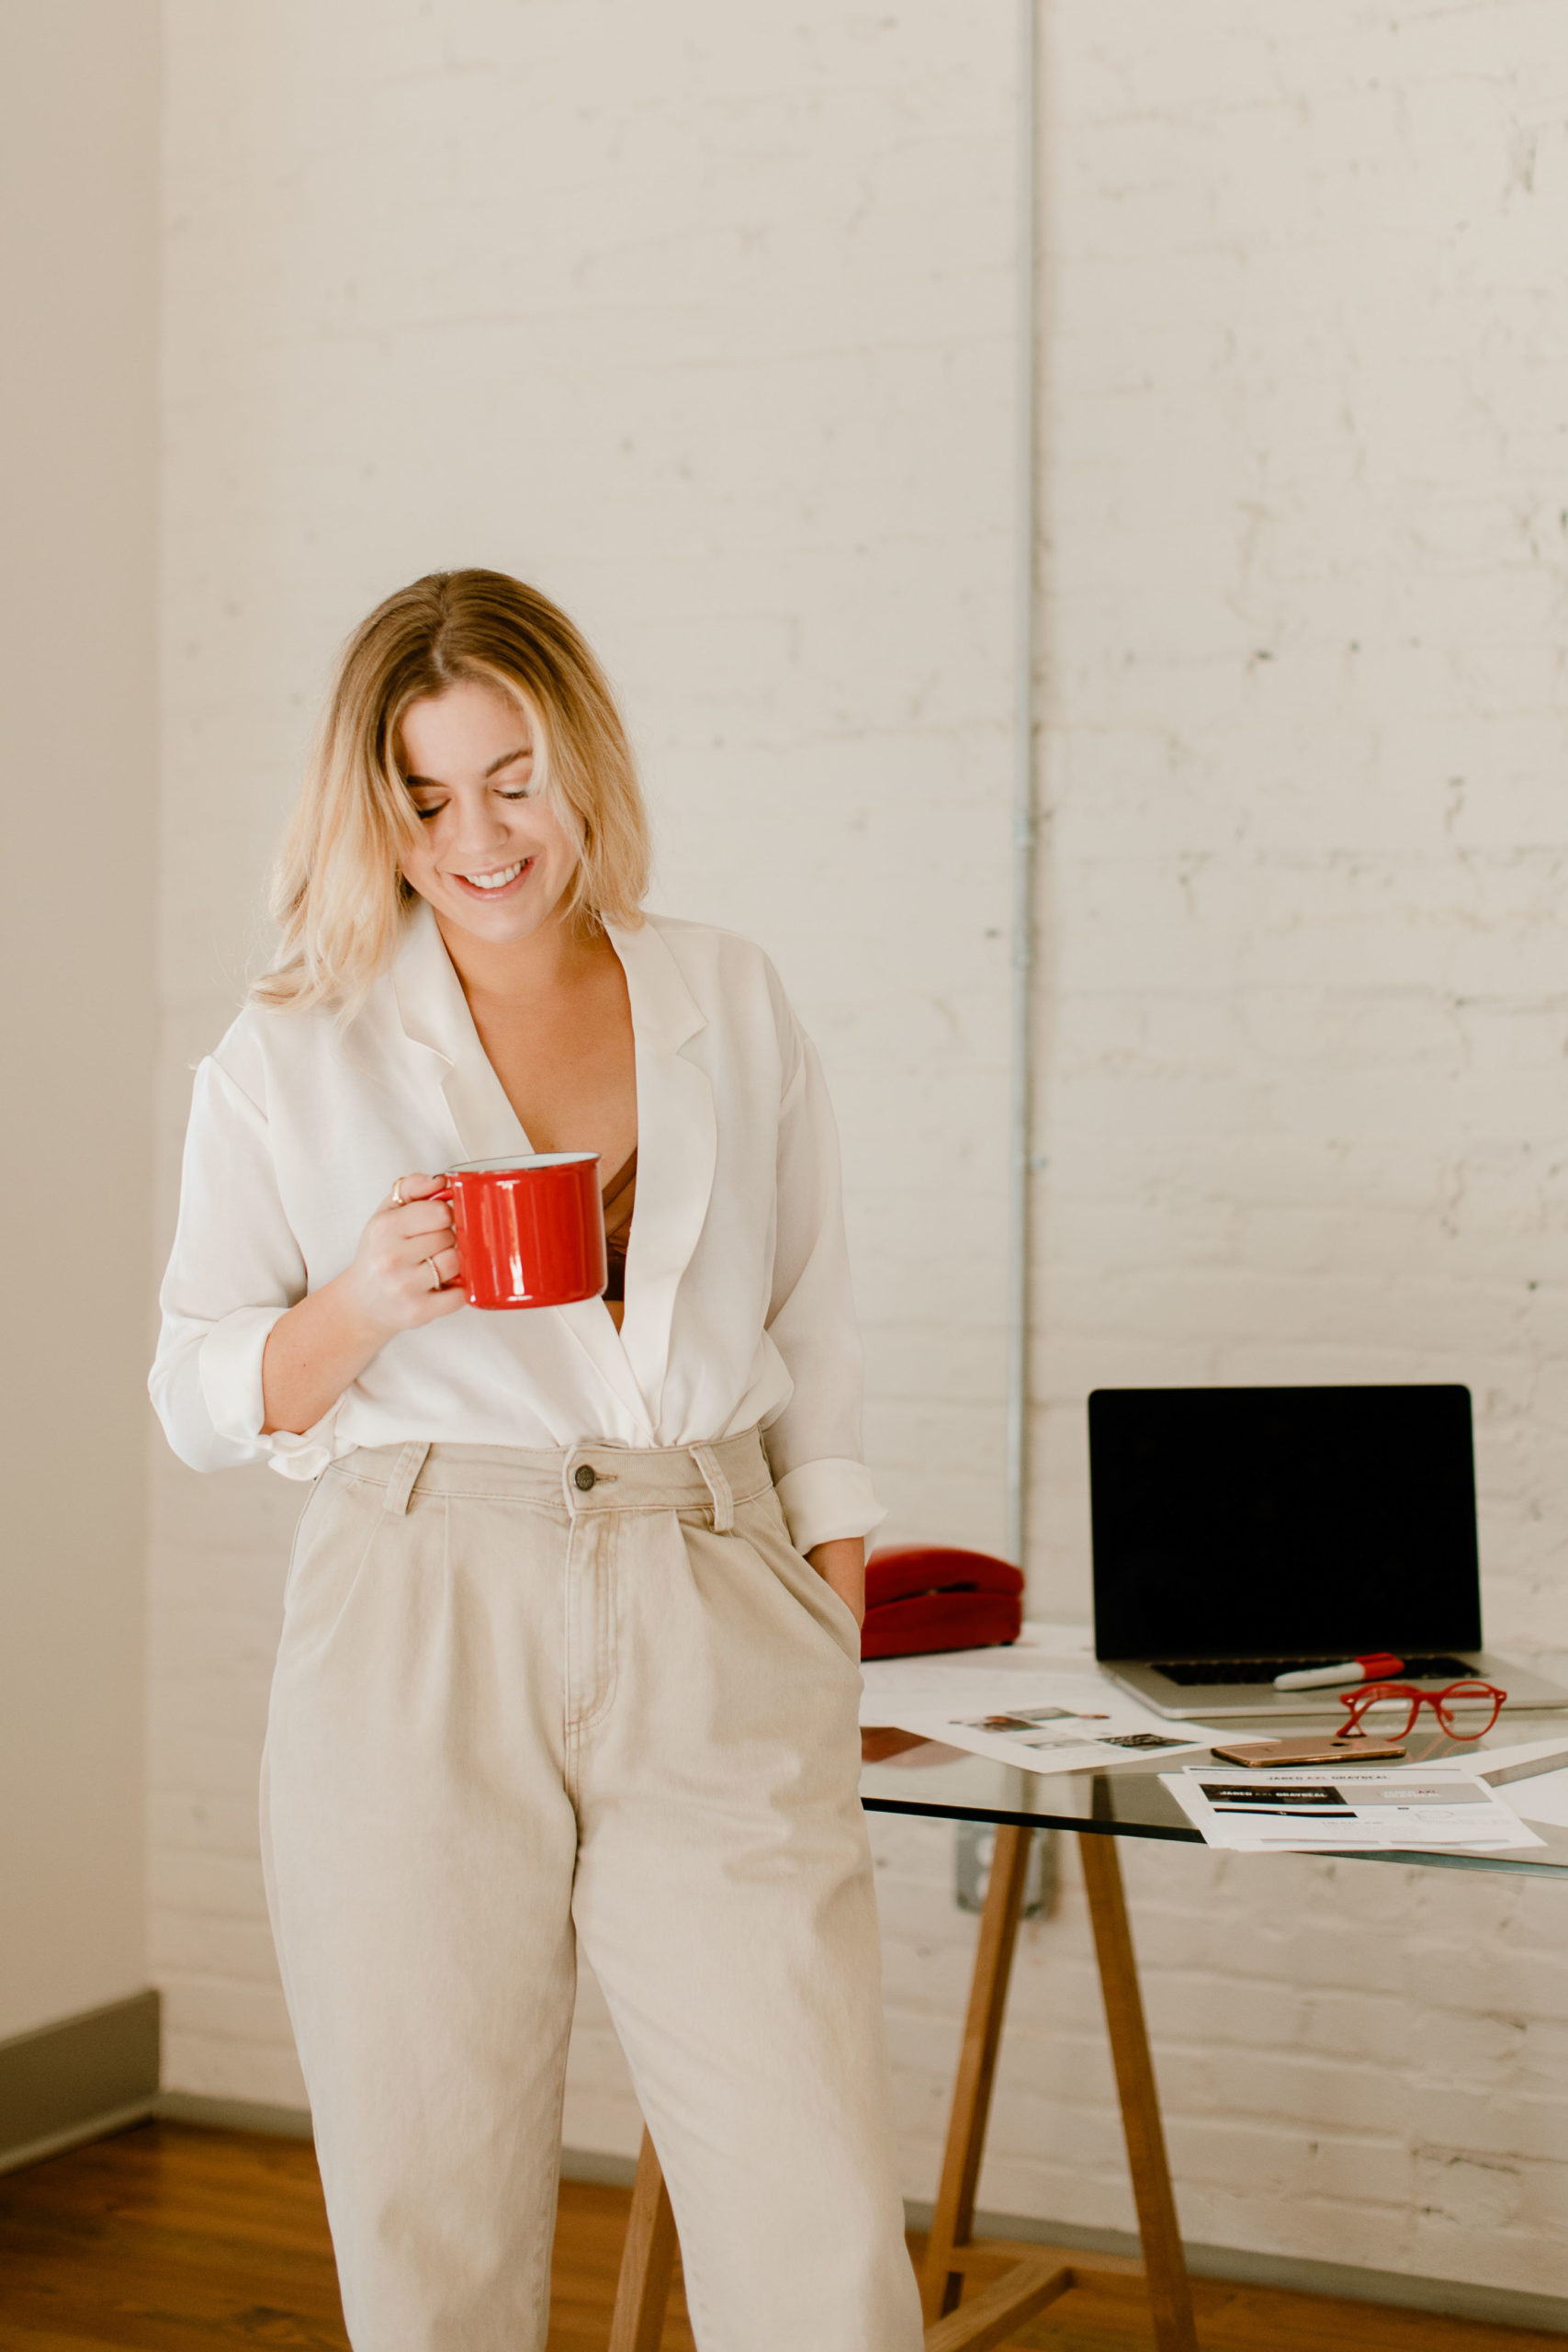 This is a portrait of a woman holding a red coffee mug with a messy desk in the background.